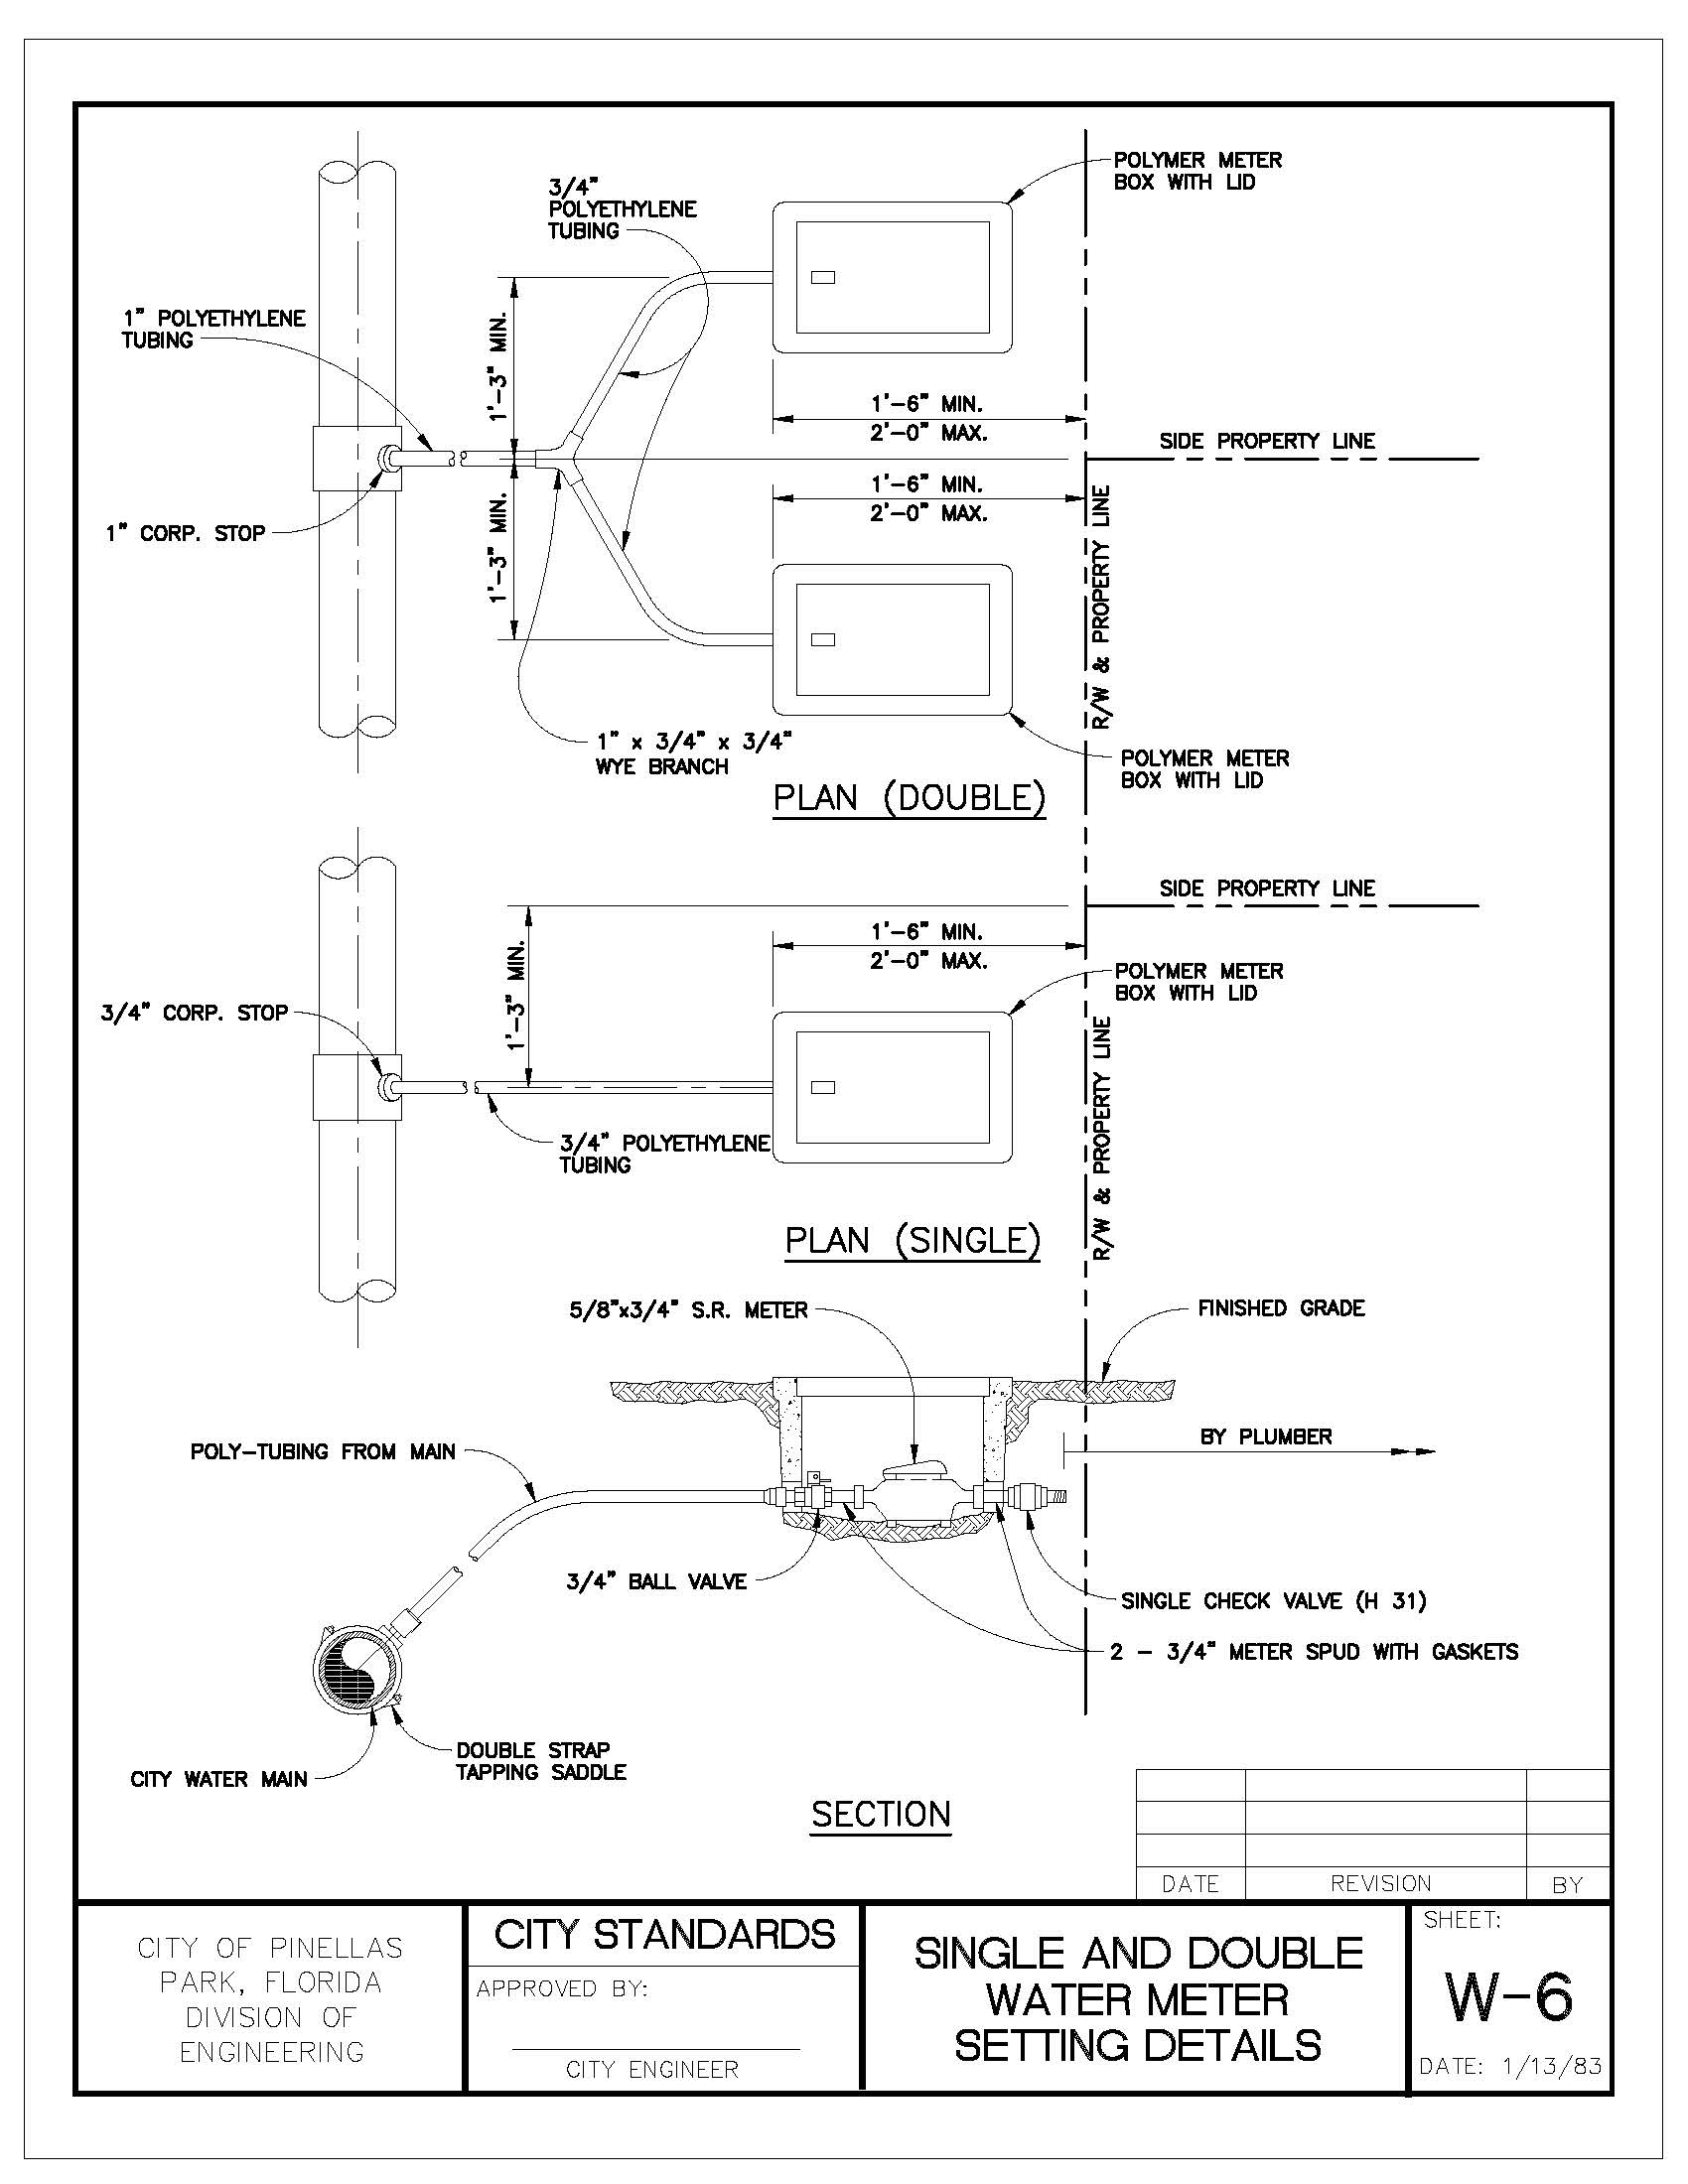 Engineering Manual v5_201908121127291138_Page_080 SINGLE AND DOUBLE WATER METER SETTING DETAILS